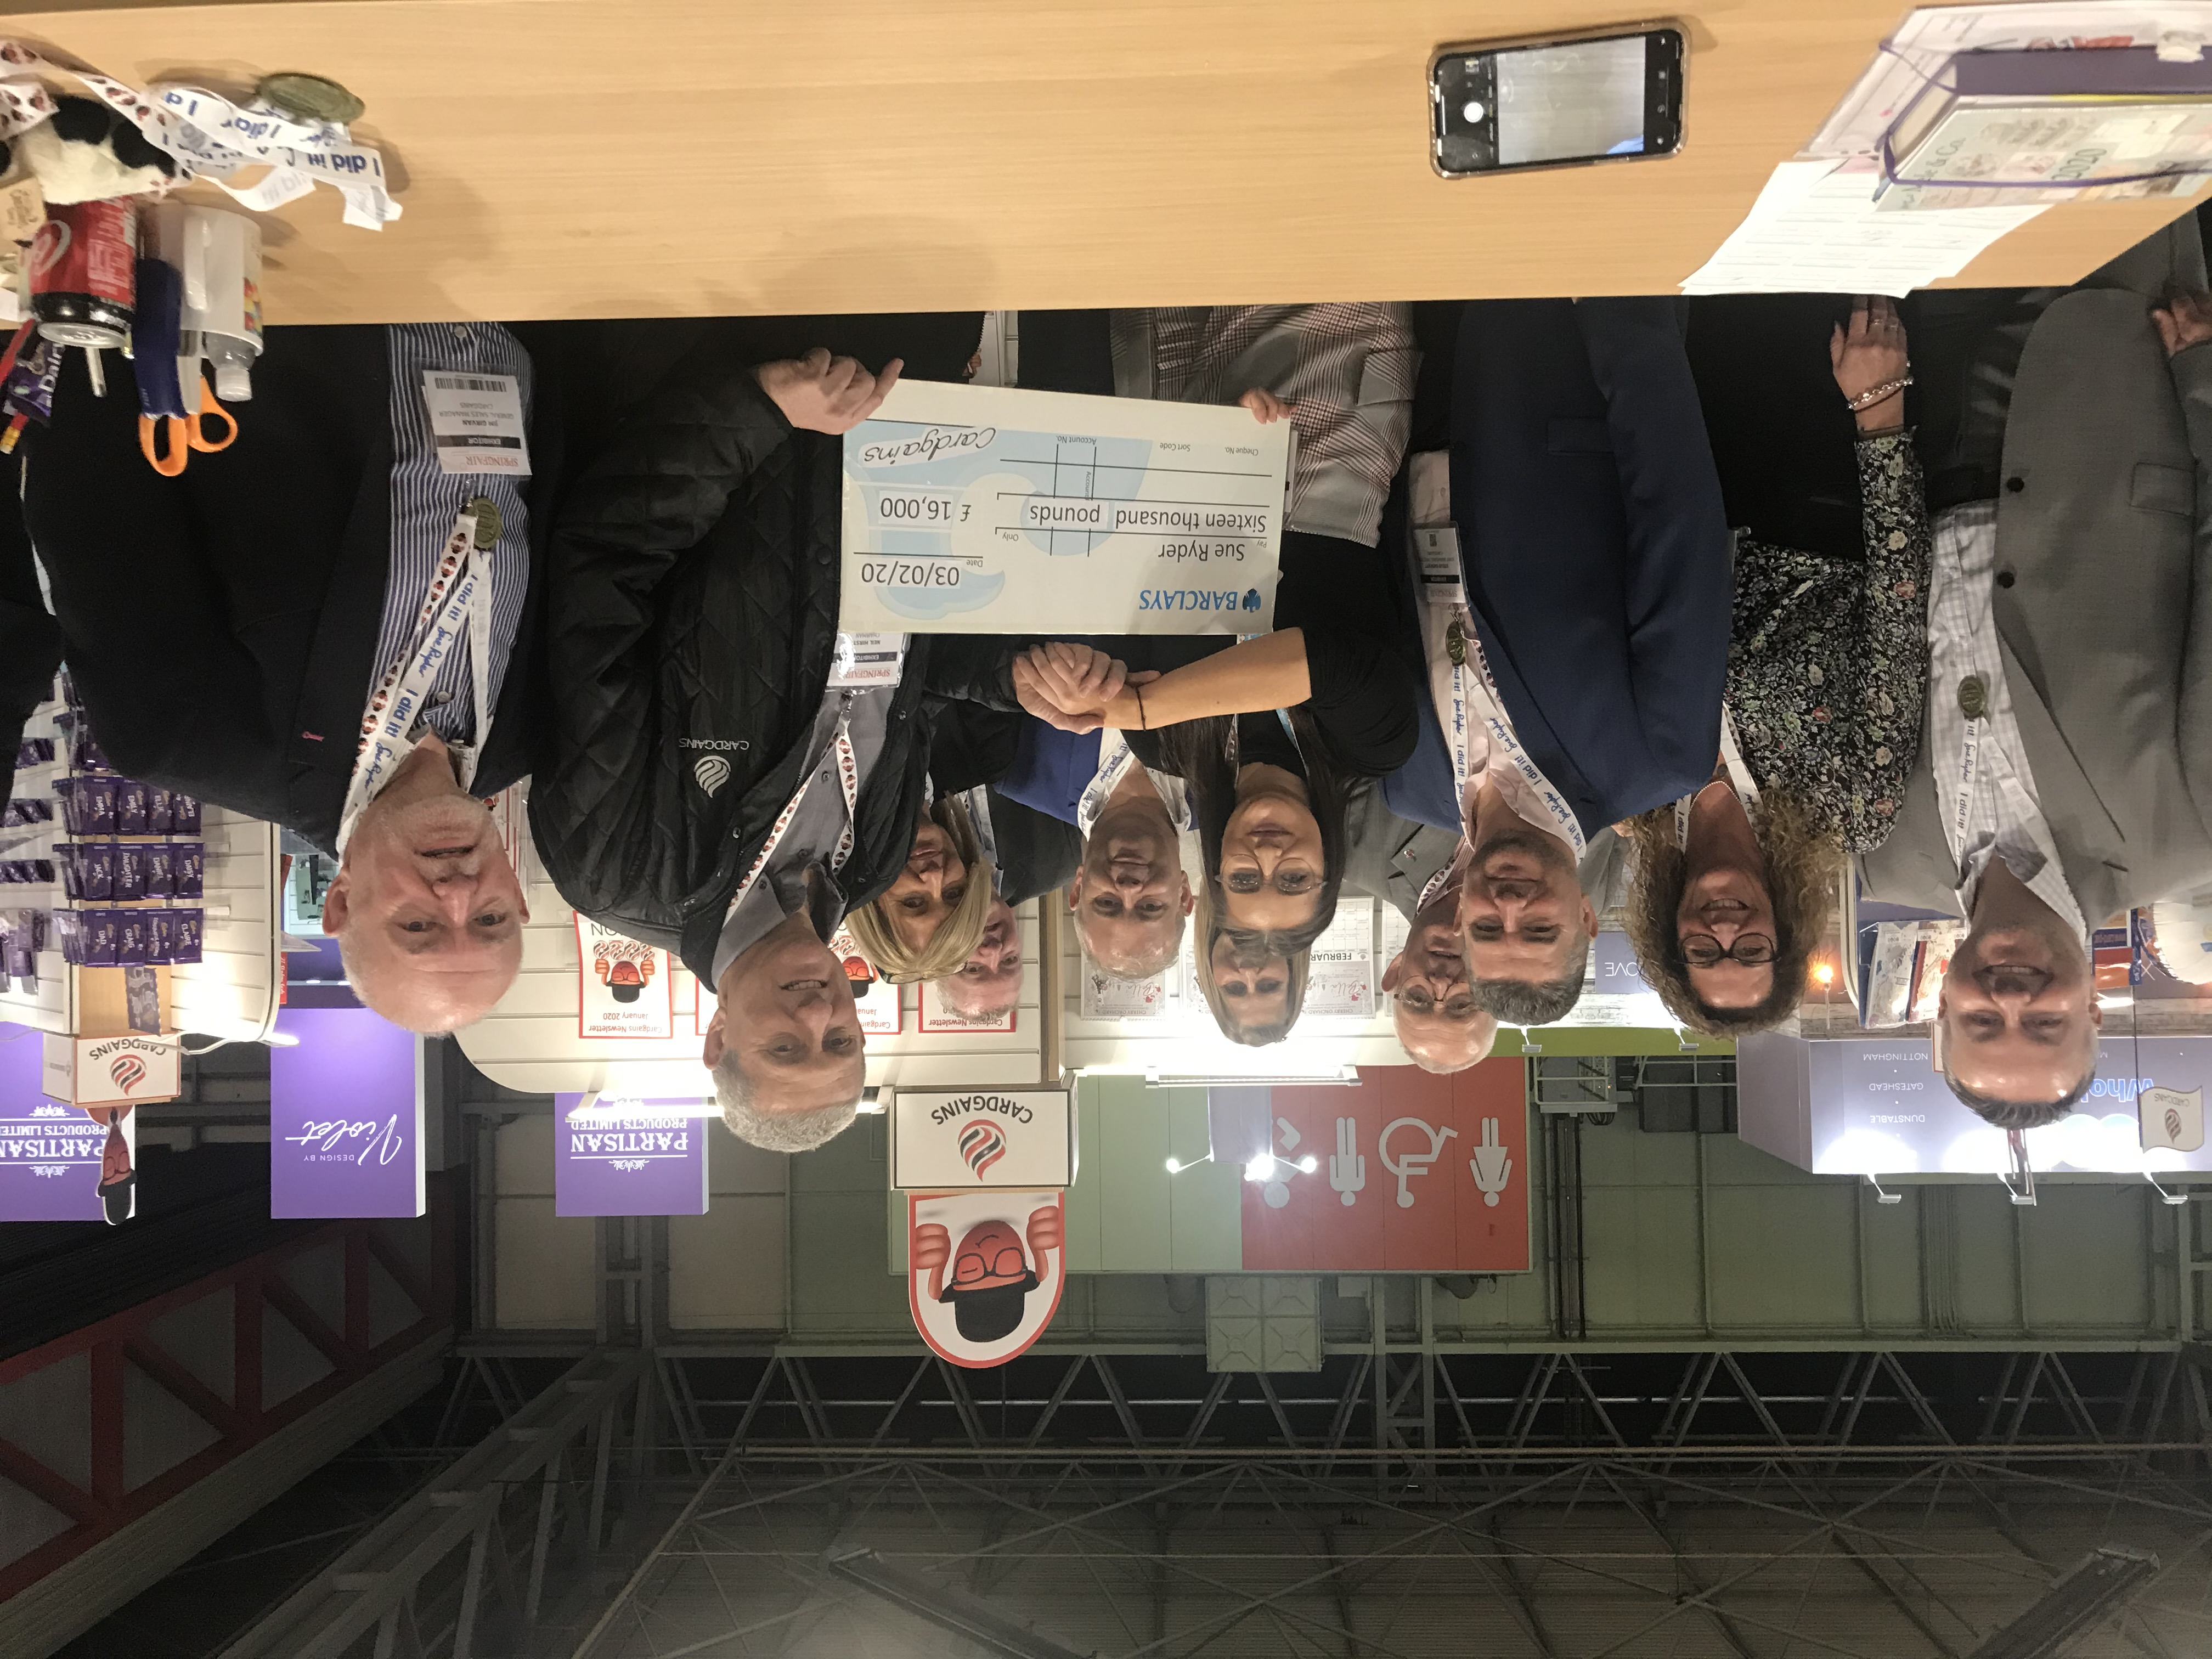 Above: The Cardgains team, members and suppliers on the buying group's 'Village' stand at Spring Fair in February presenting a cheque to Sue Ryder, as a result of its charity fundraising activity in 2019.